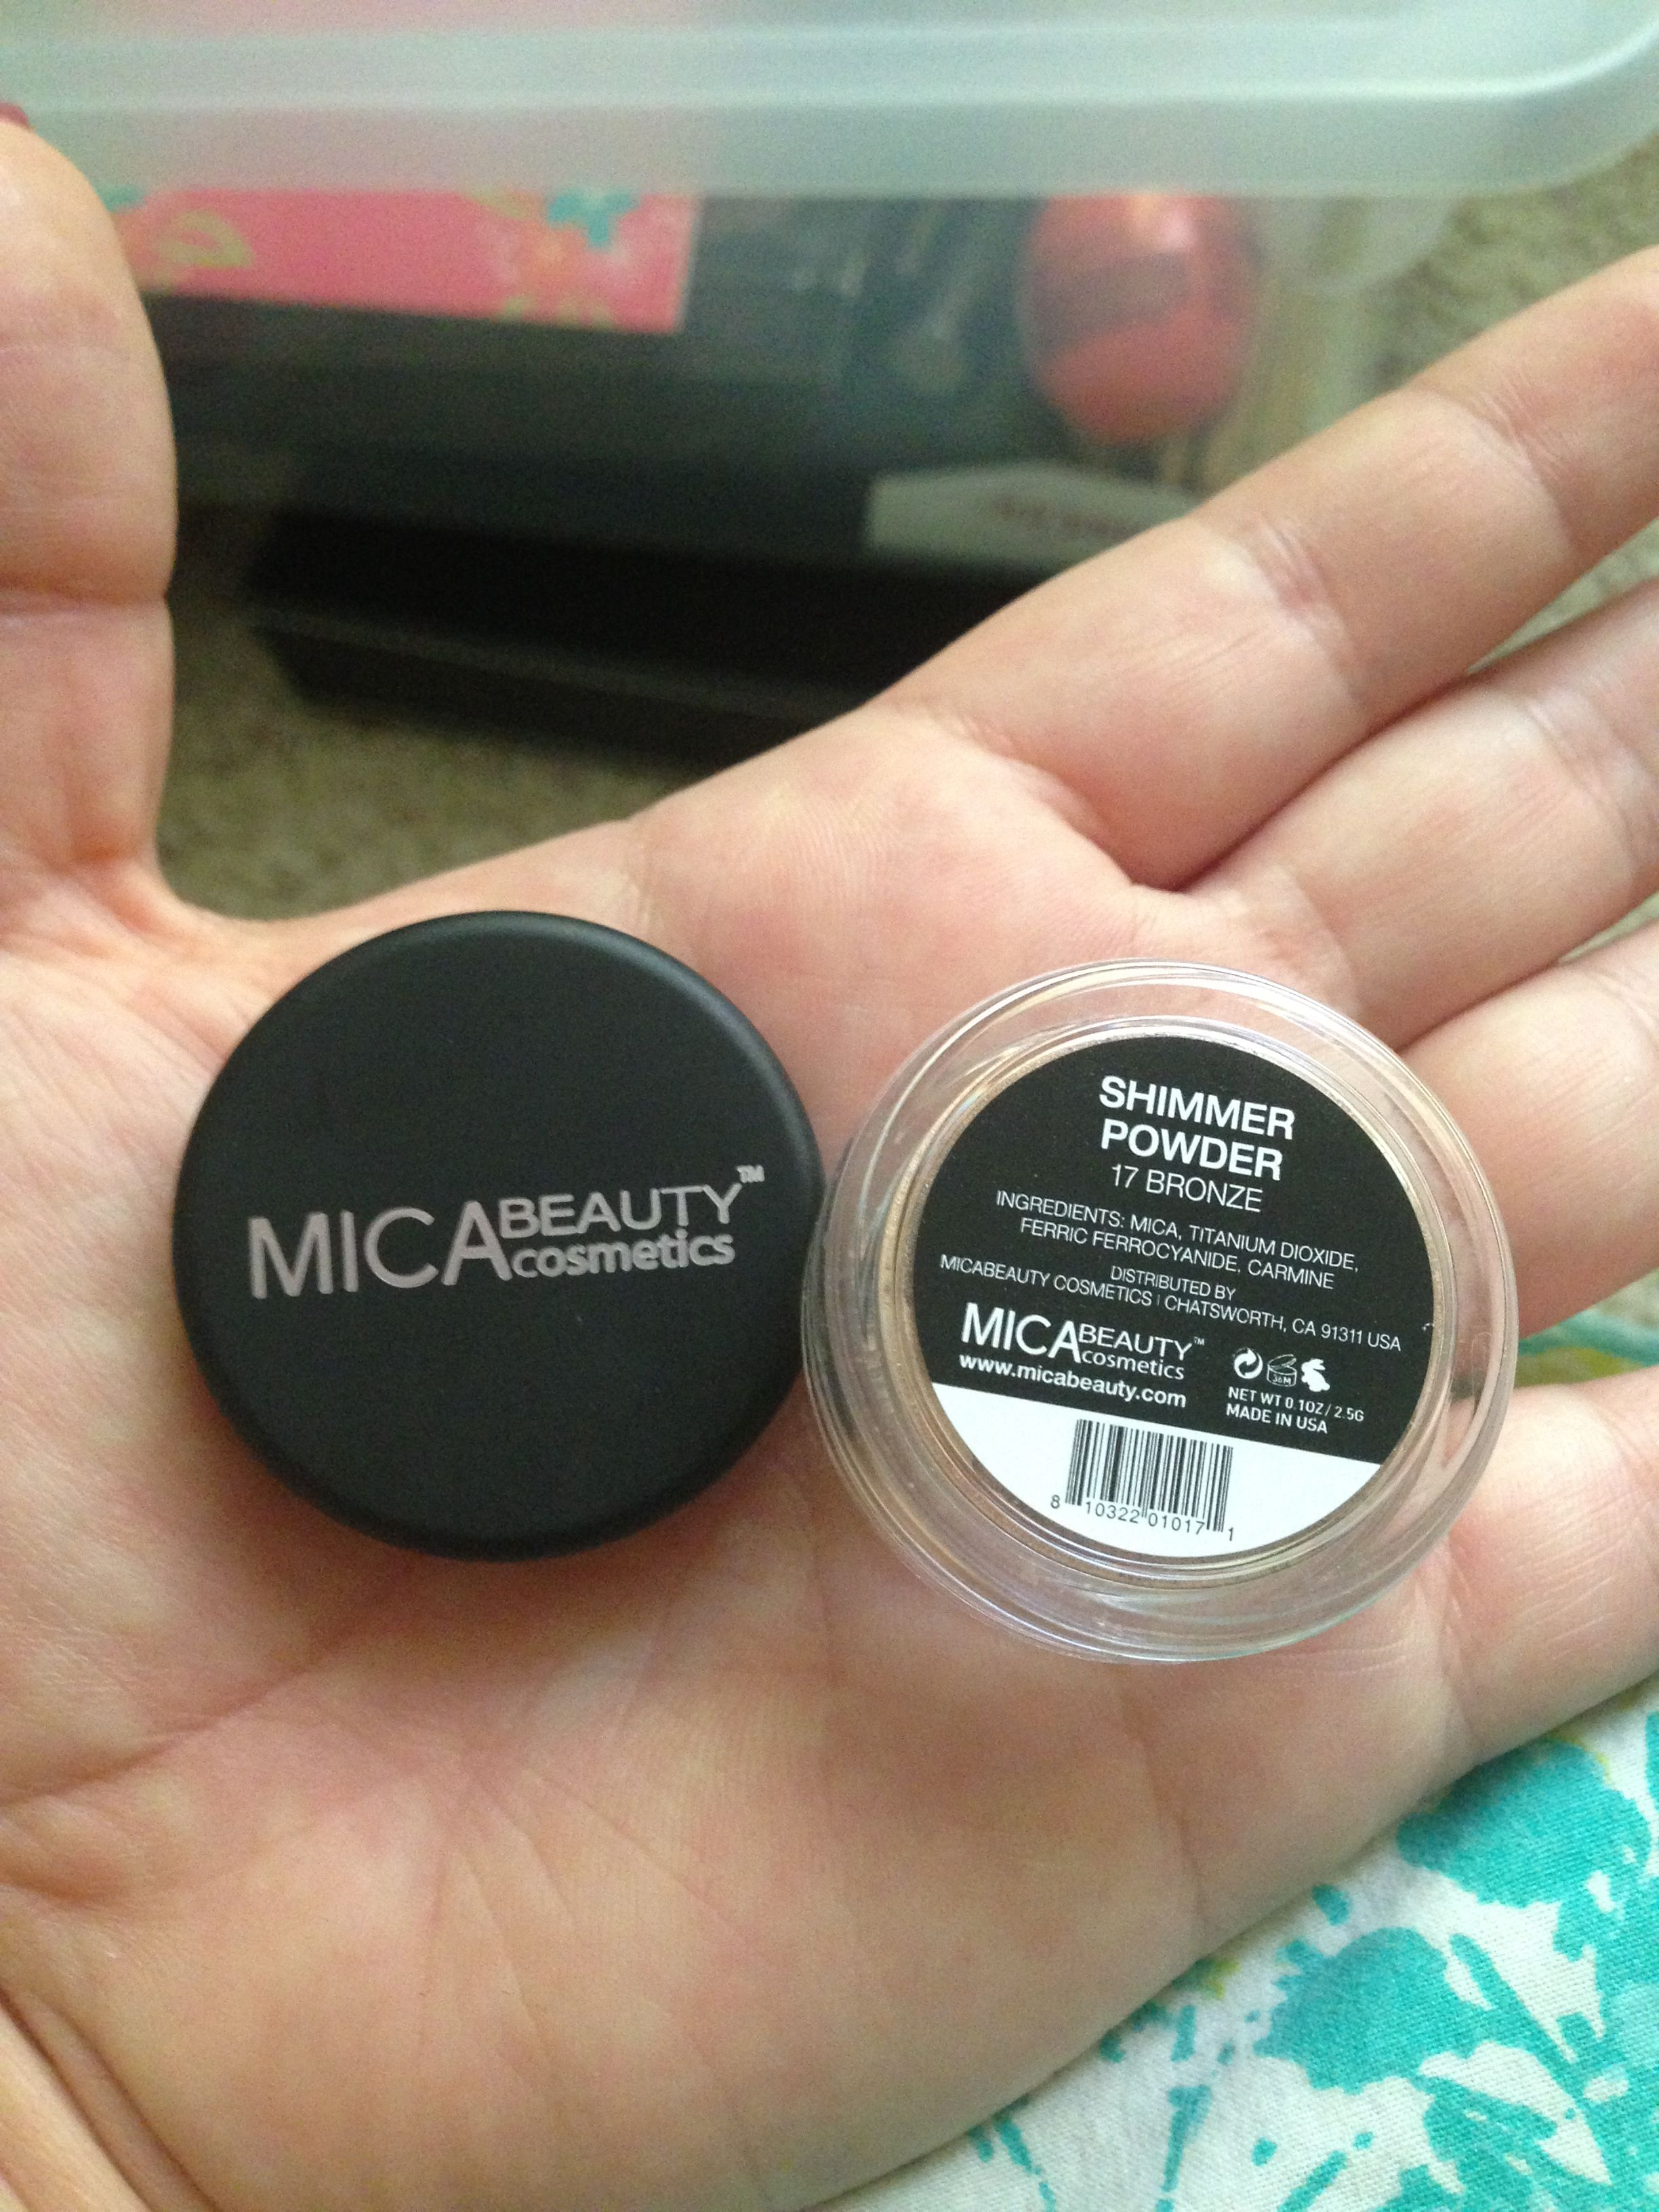 Mica Beauty Shimmer Powder in 17 Bronze 8 shipped